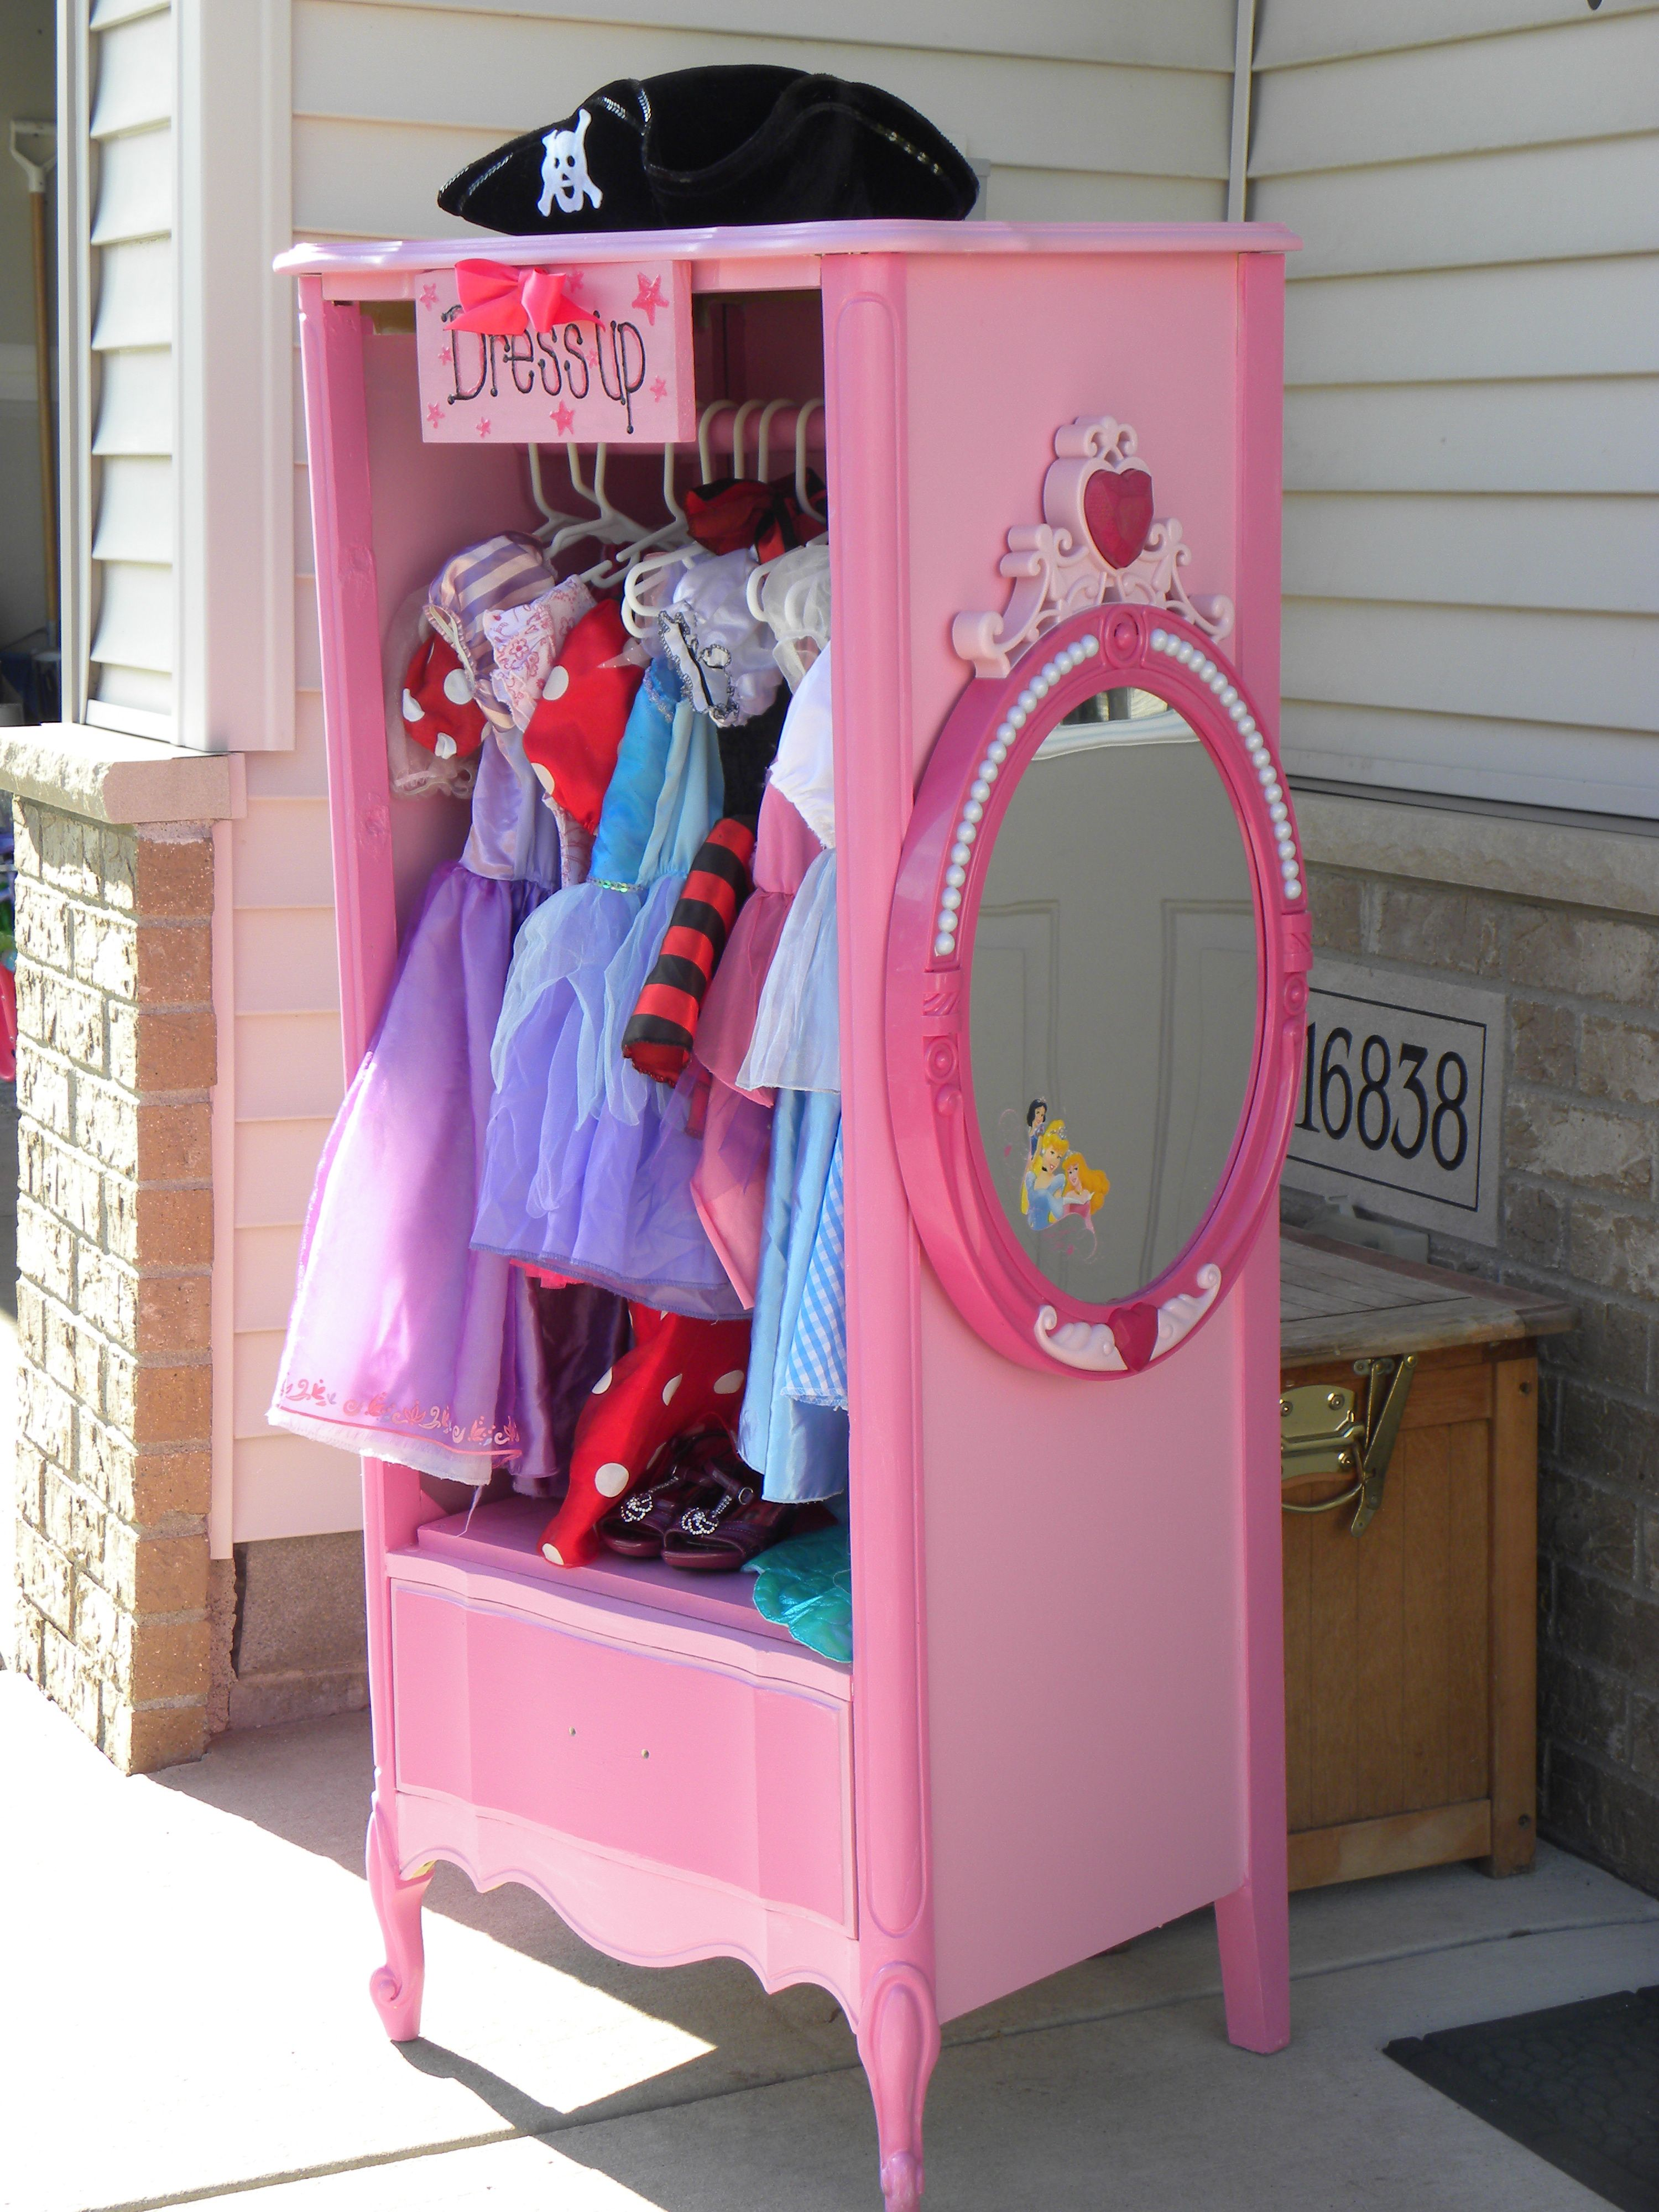 Exceptionnel Cabinet For Little Girls Dress Up Clothes Made From An Old Dresser! U003c3 This  Is Such A Neat Idea, Thanks For Sharing Your Creation @Mandi Hanson!